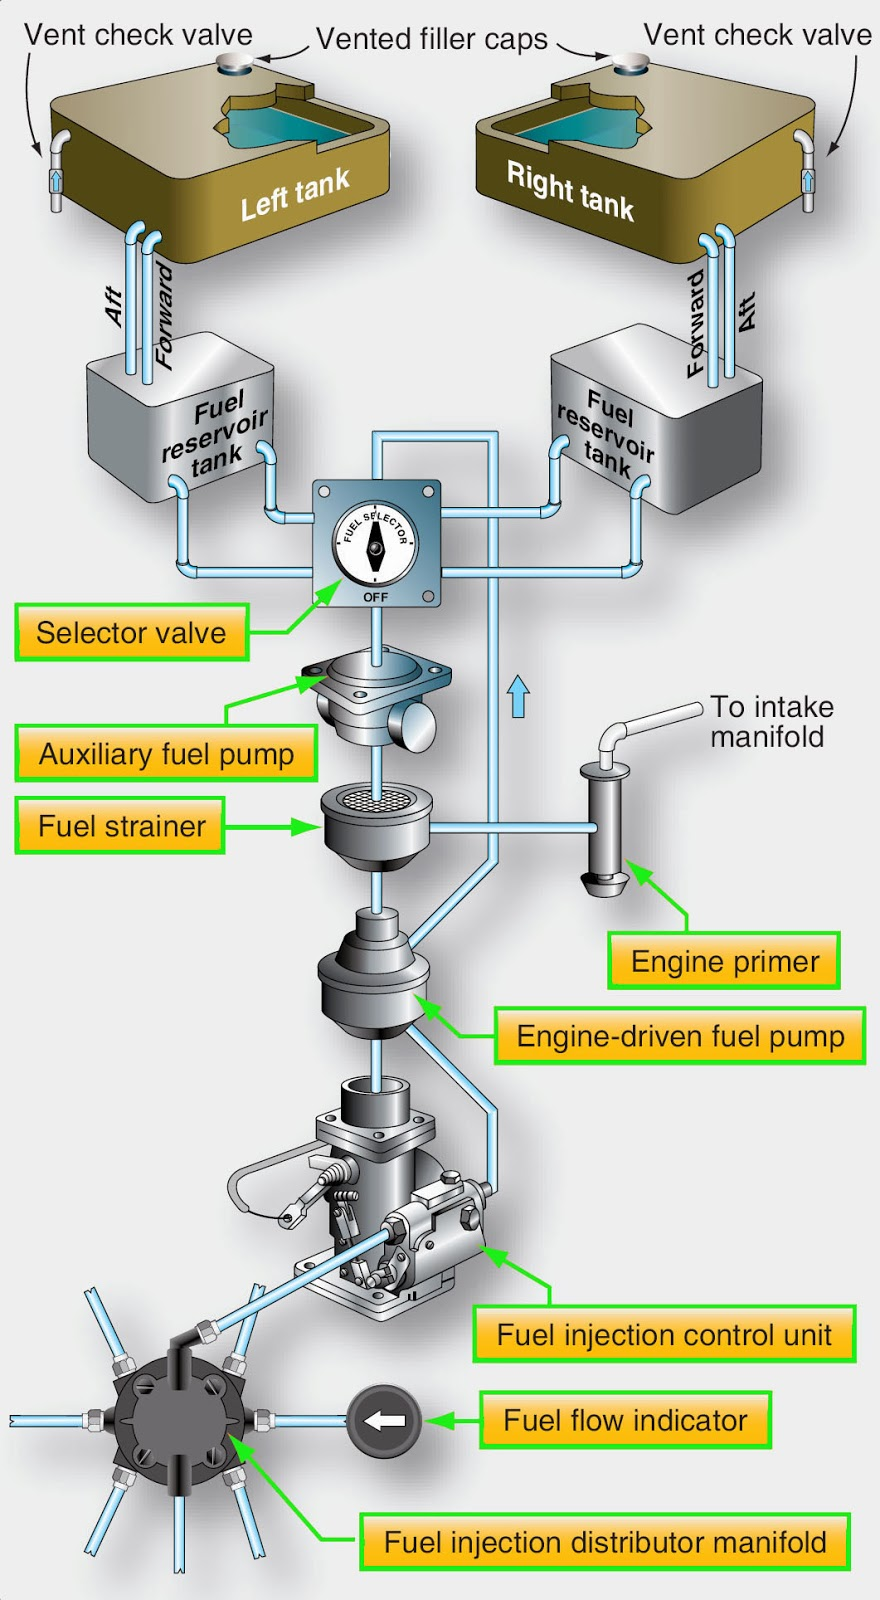 Aircraft systems: Aircraft Fuel Systems